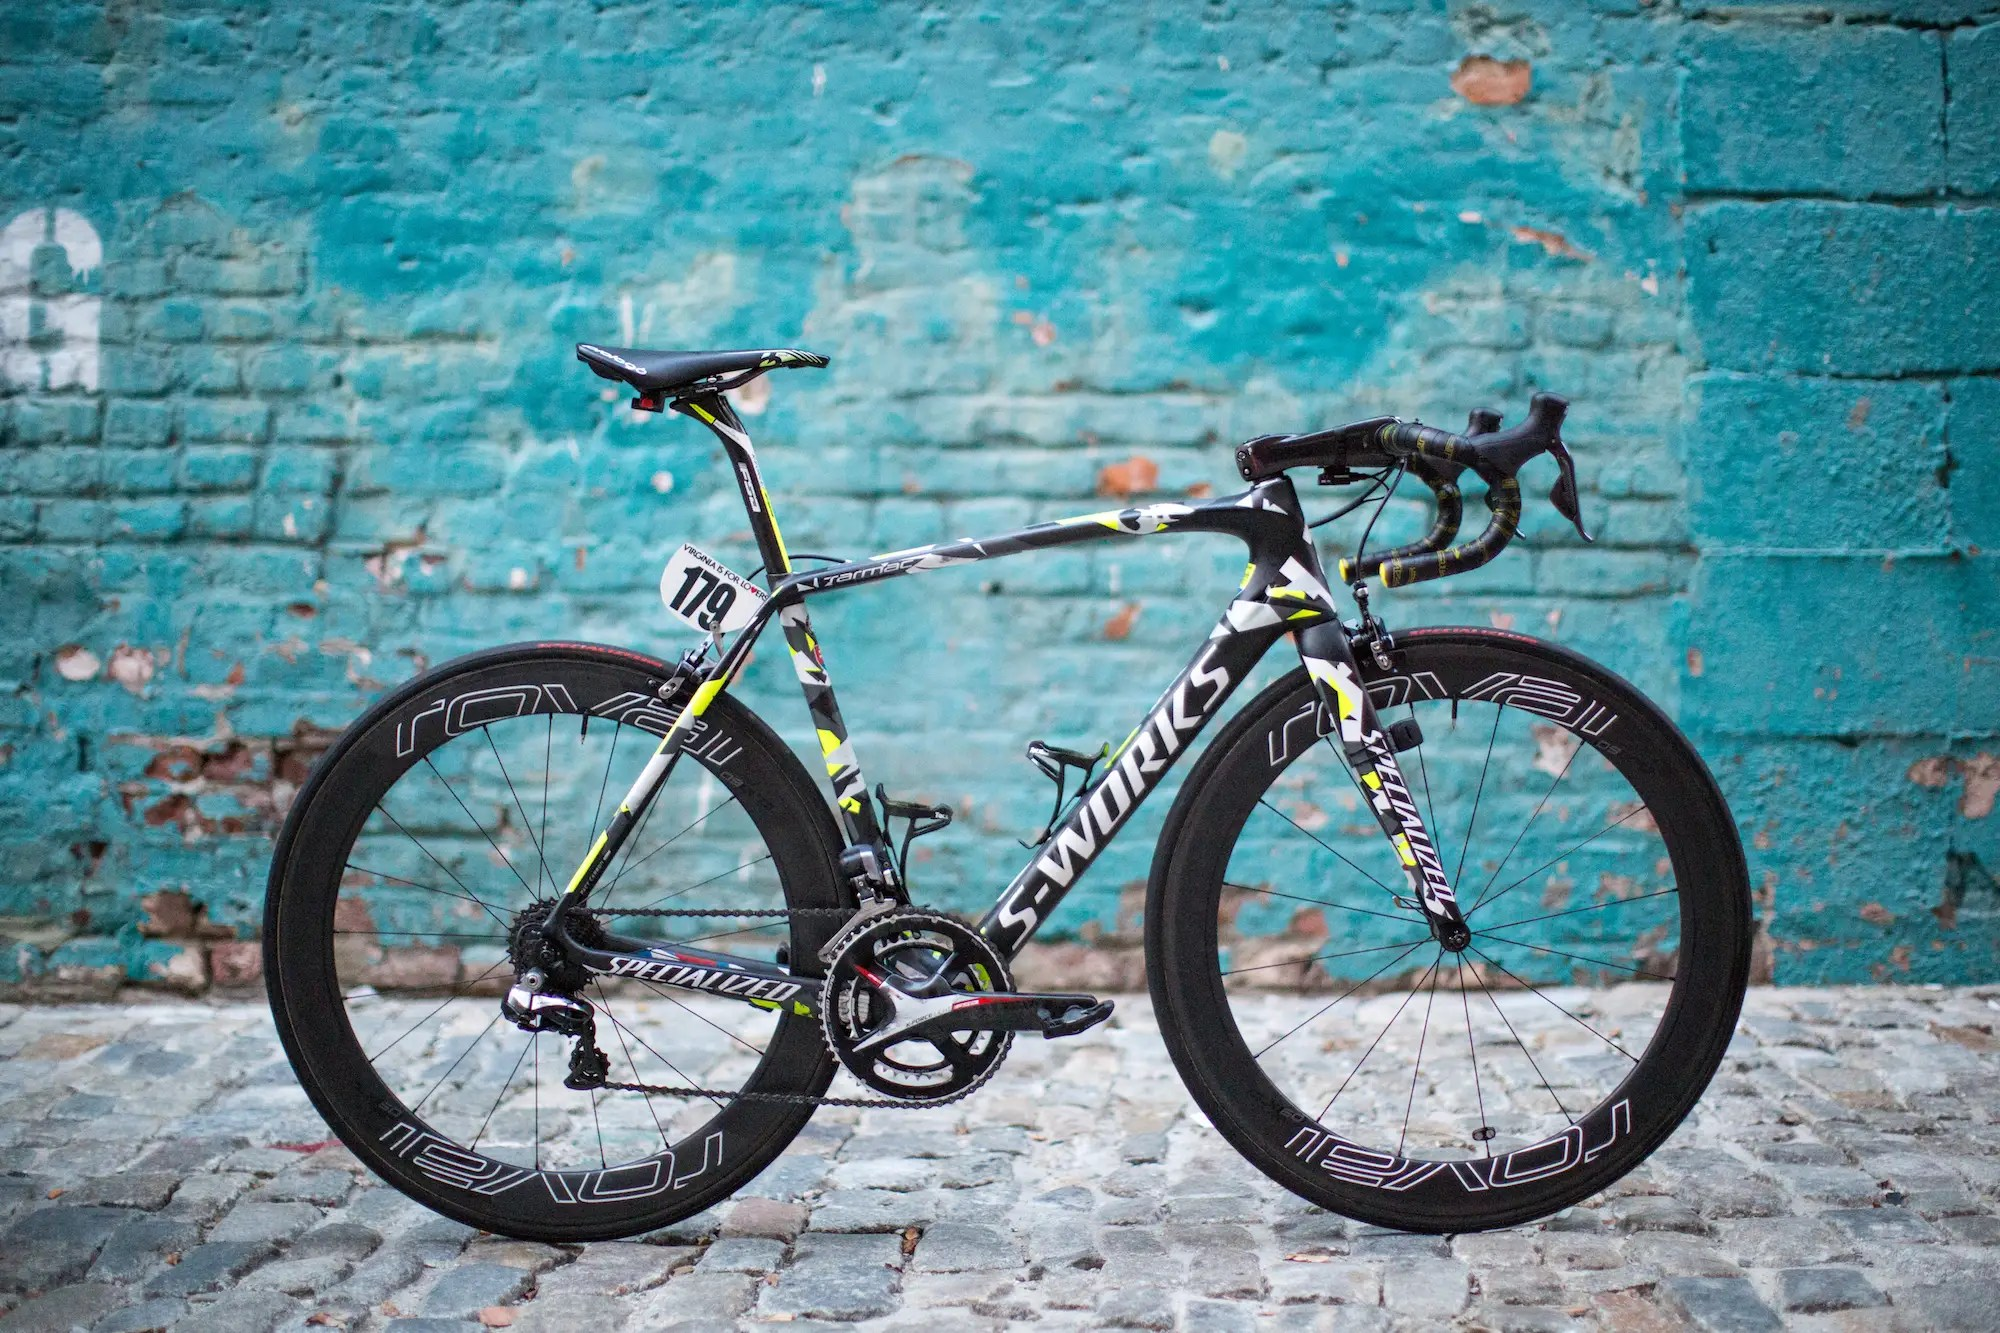 Sagan's Specialized S-Works Tarmac is believed to weigh a tad under 15 pounds. The Tarmac with Di2 Retails for $9,250 USD.